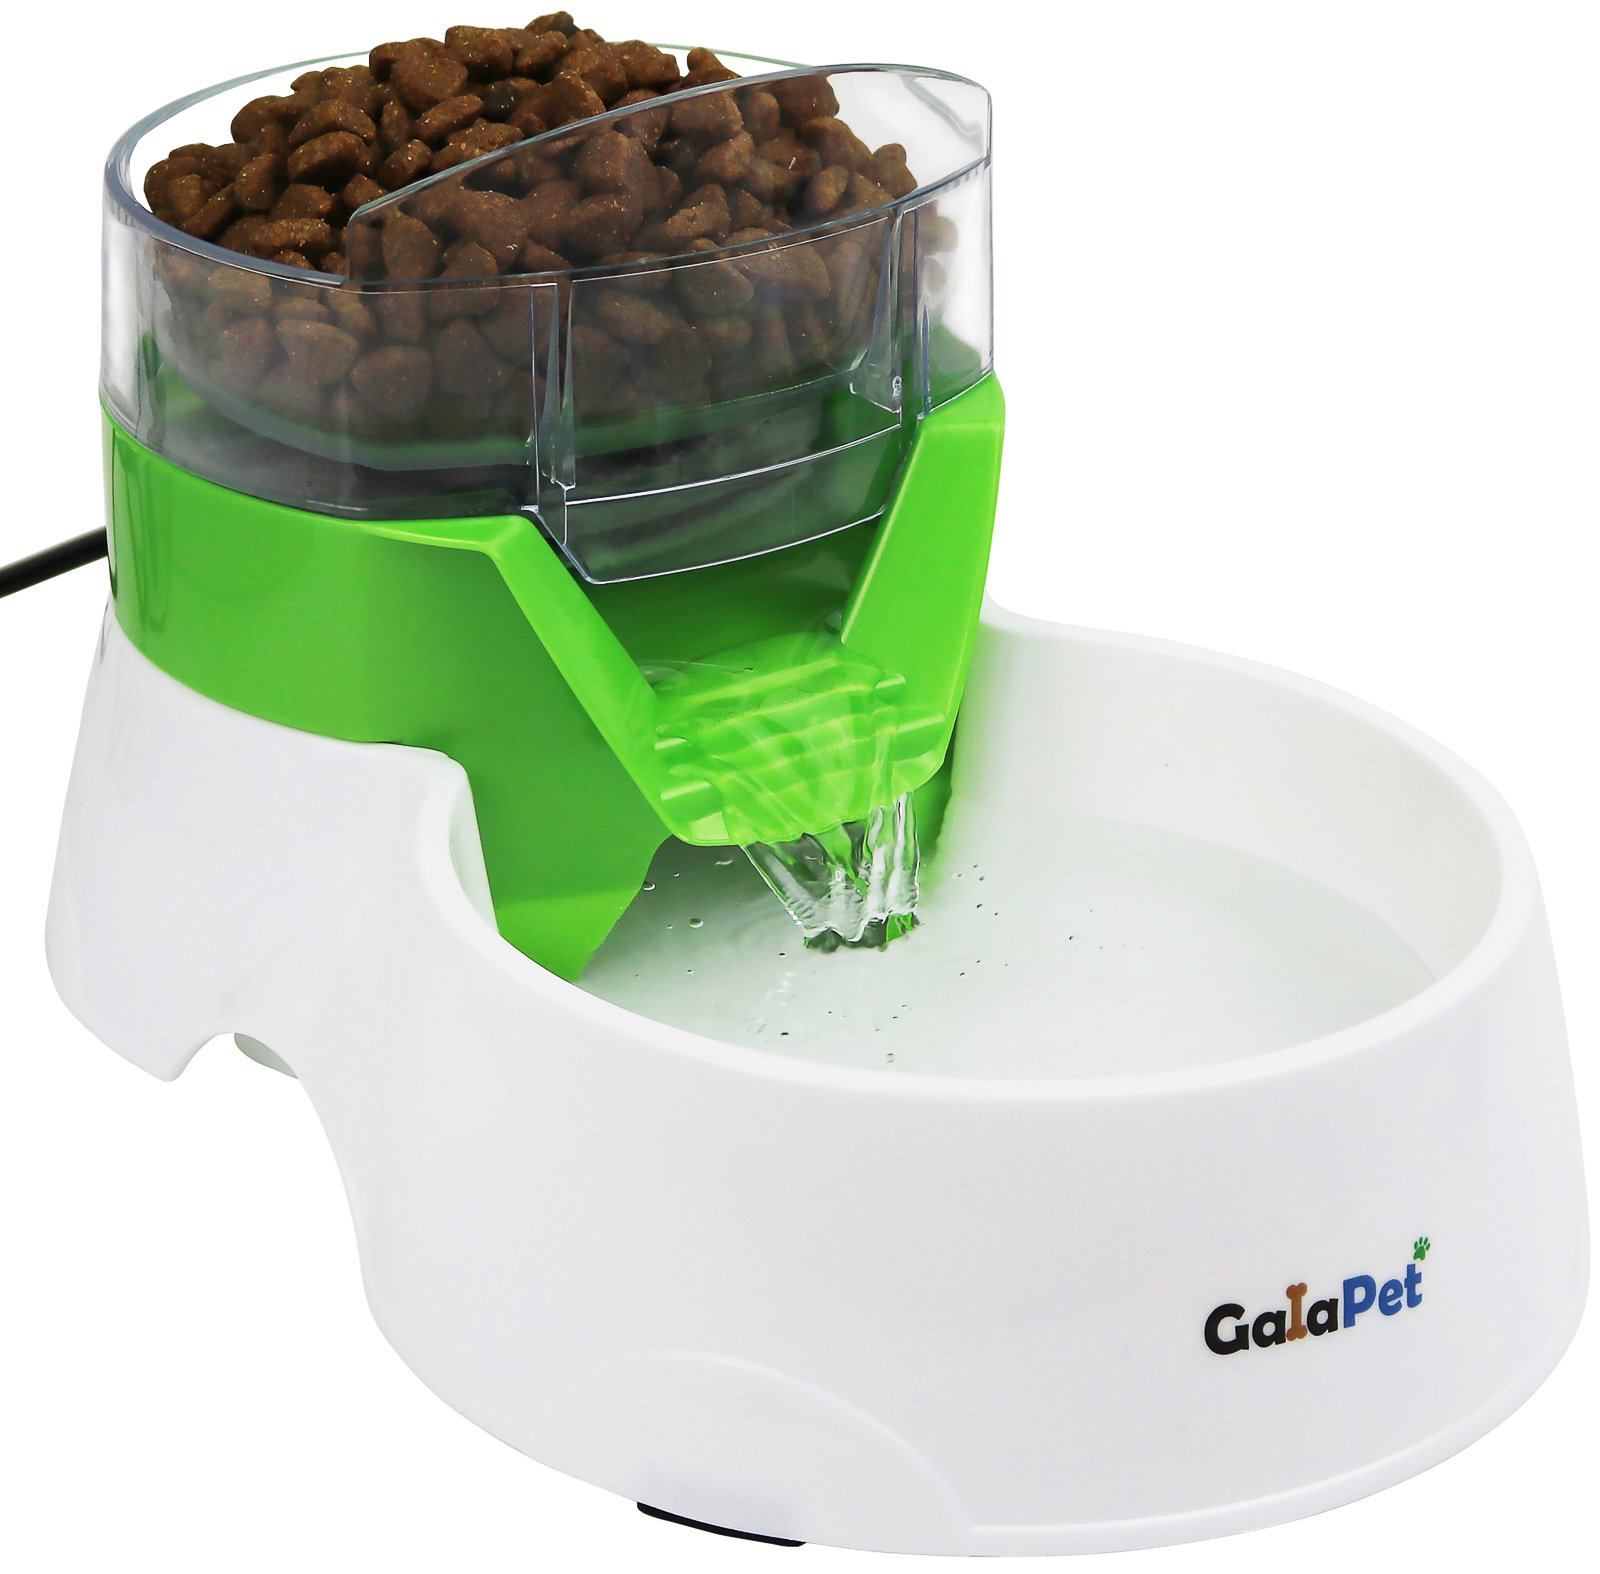 GalaPet Pet Water Fountain and Feeder for Cat and Dog